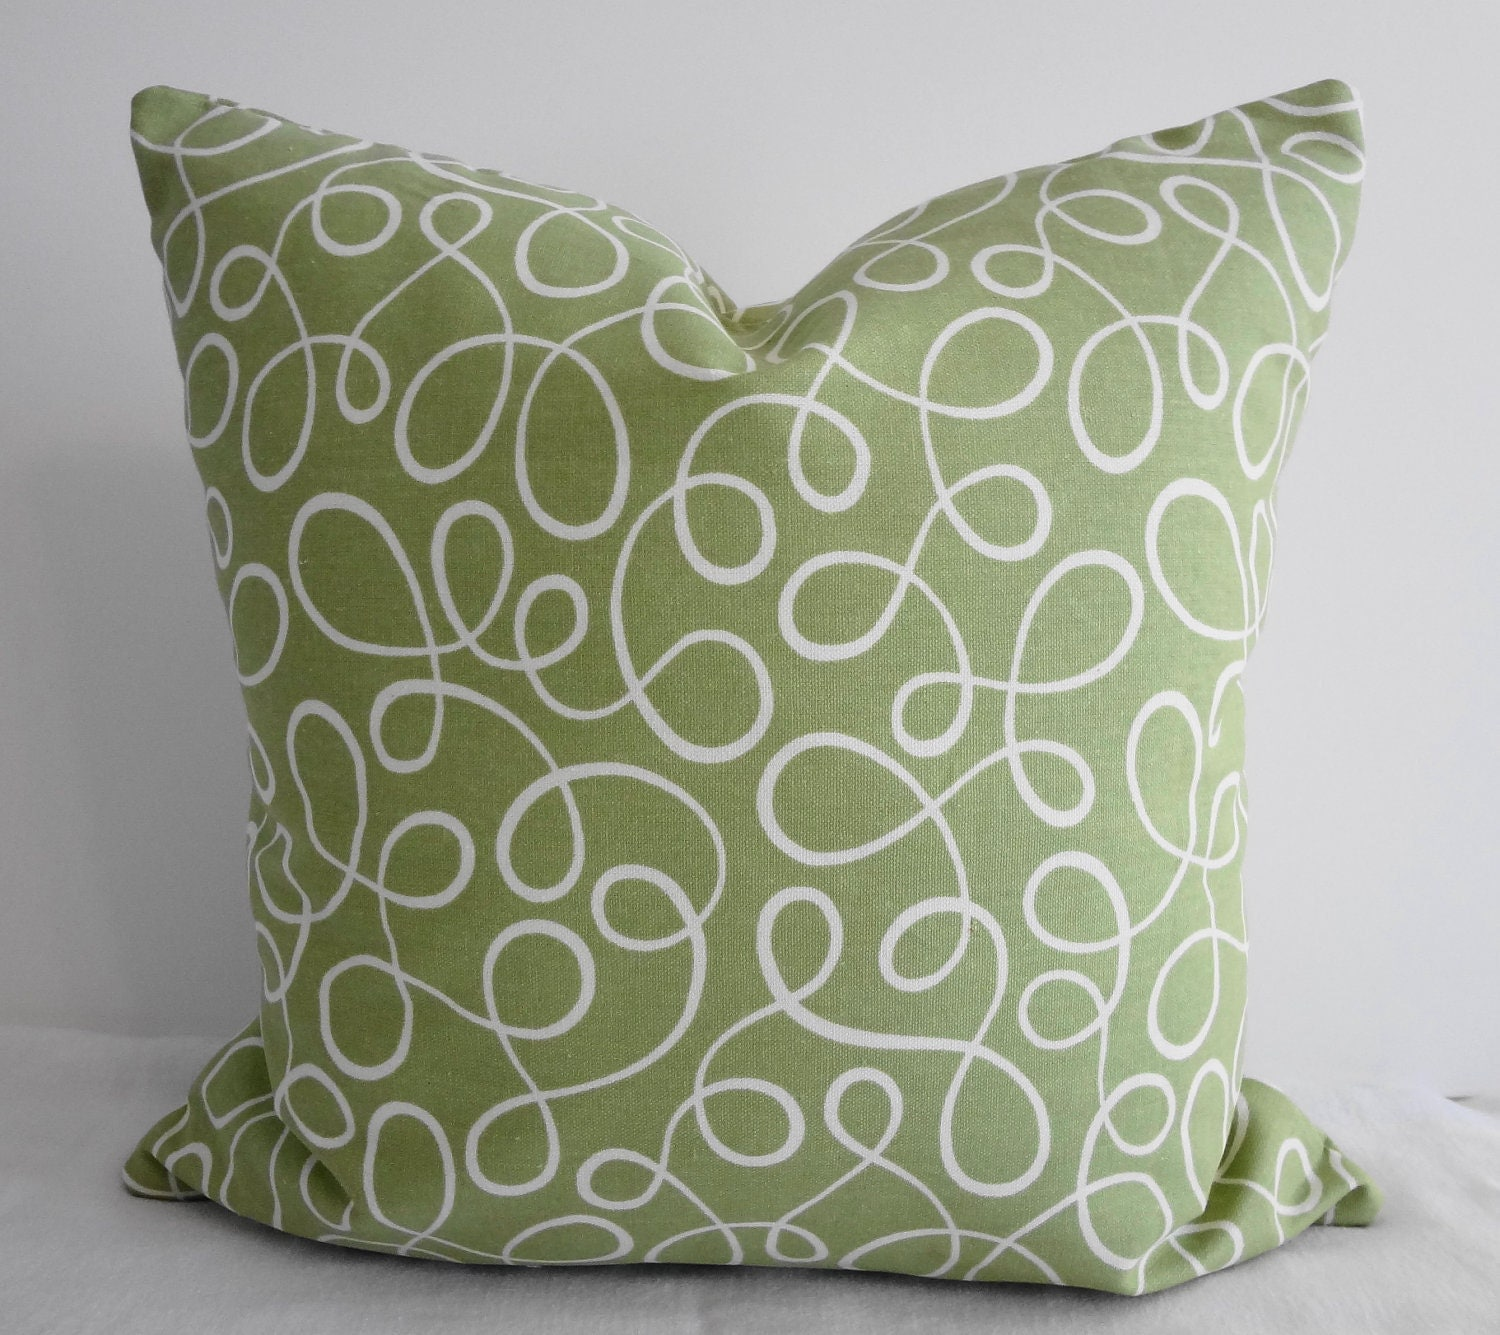 Sage Green Swirls Decorative Throw Pillow Covers P Kaufmann